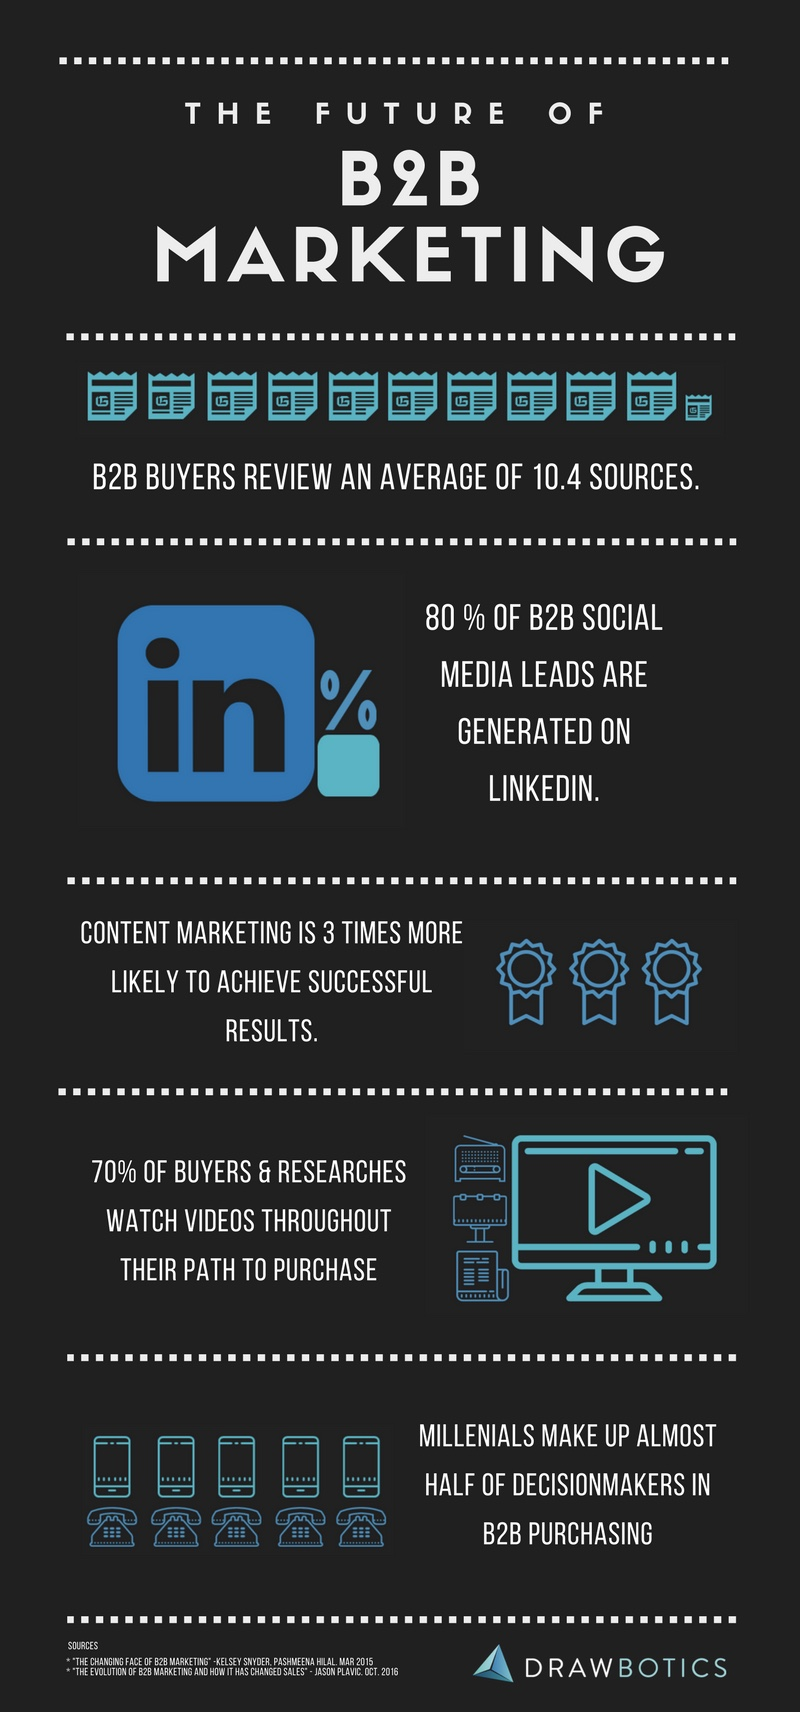 What is causing a change in B2B Marketing